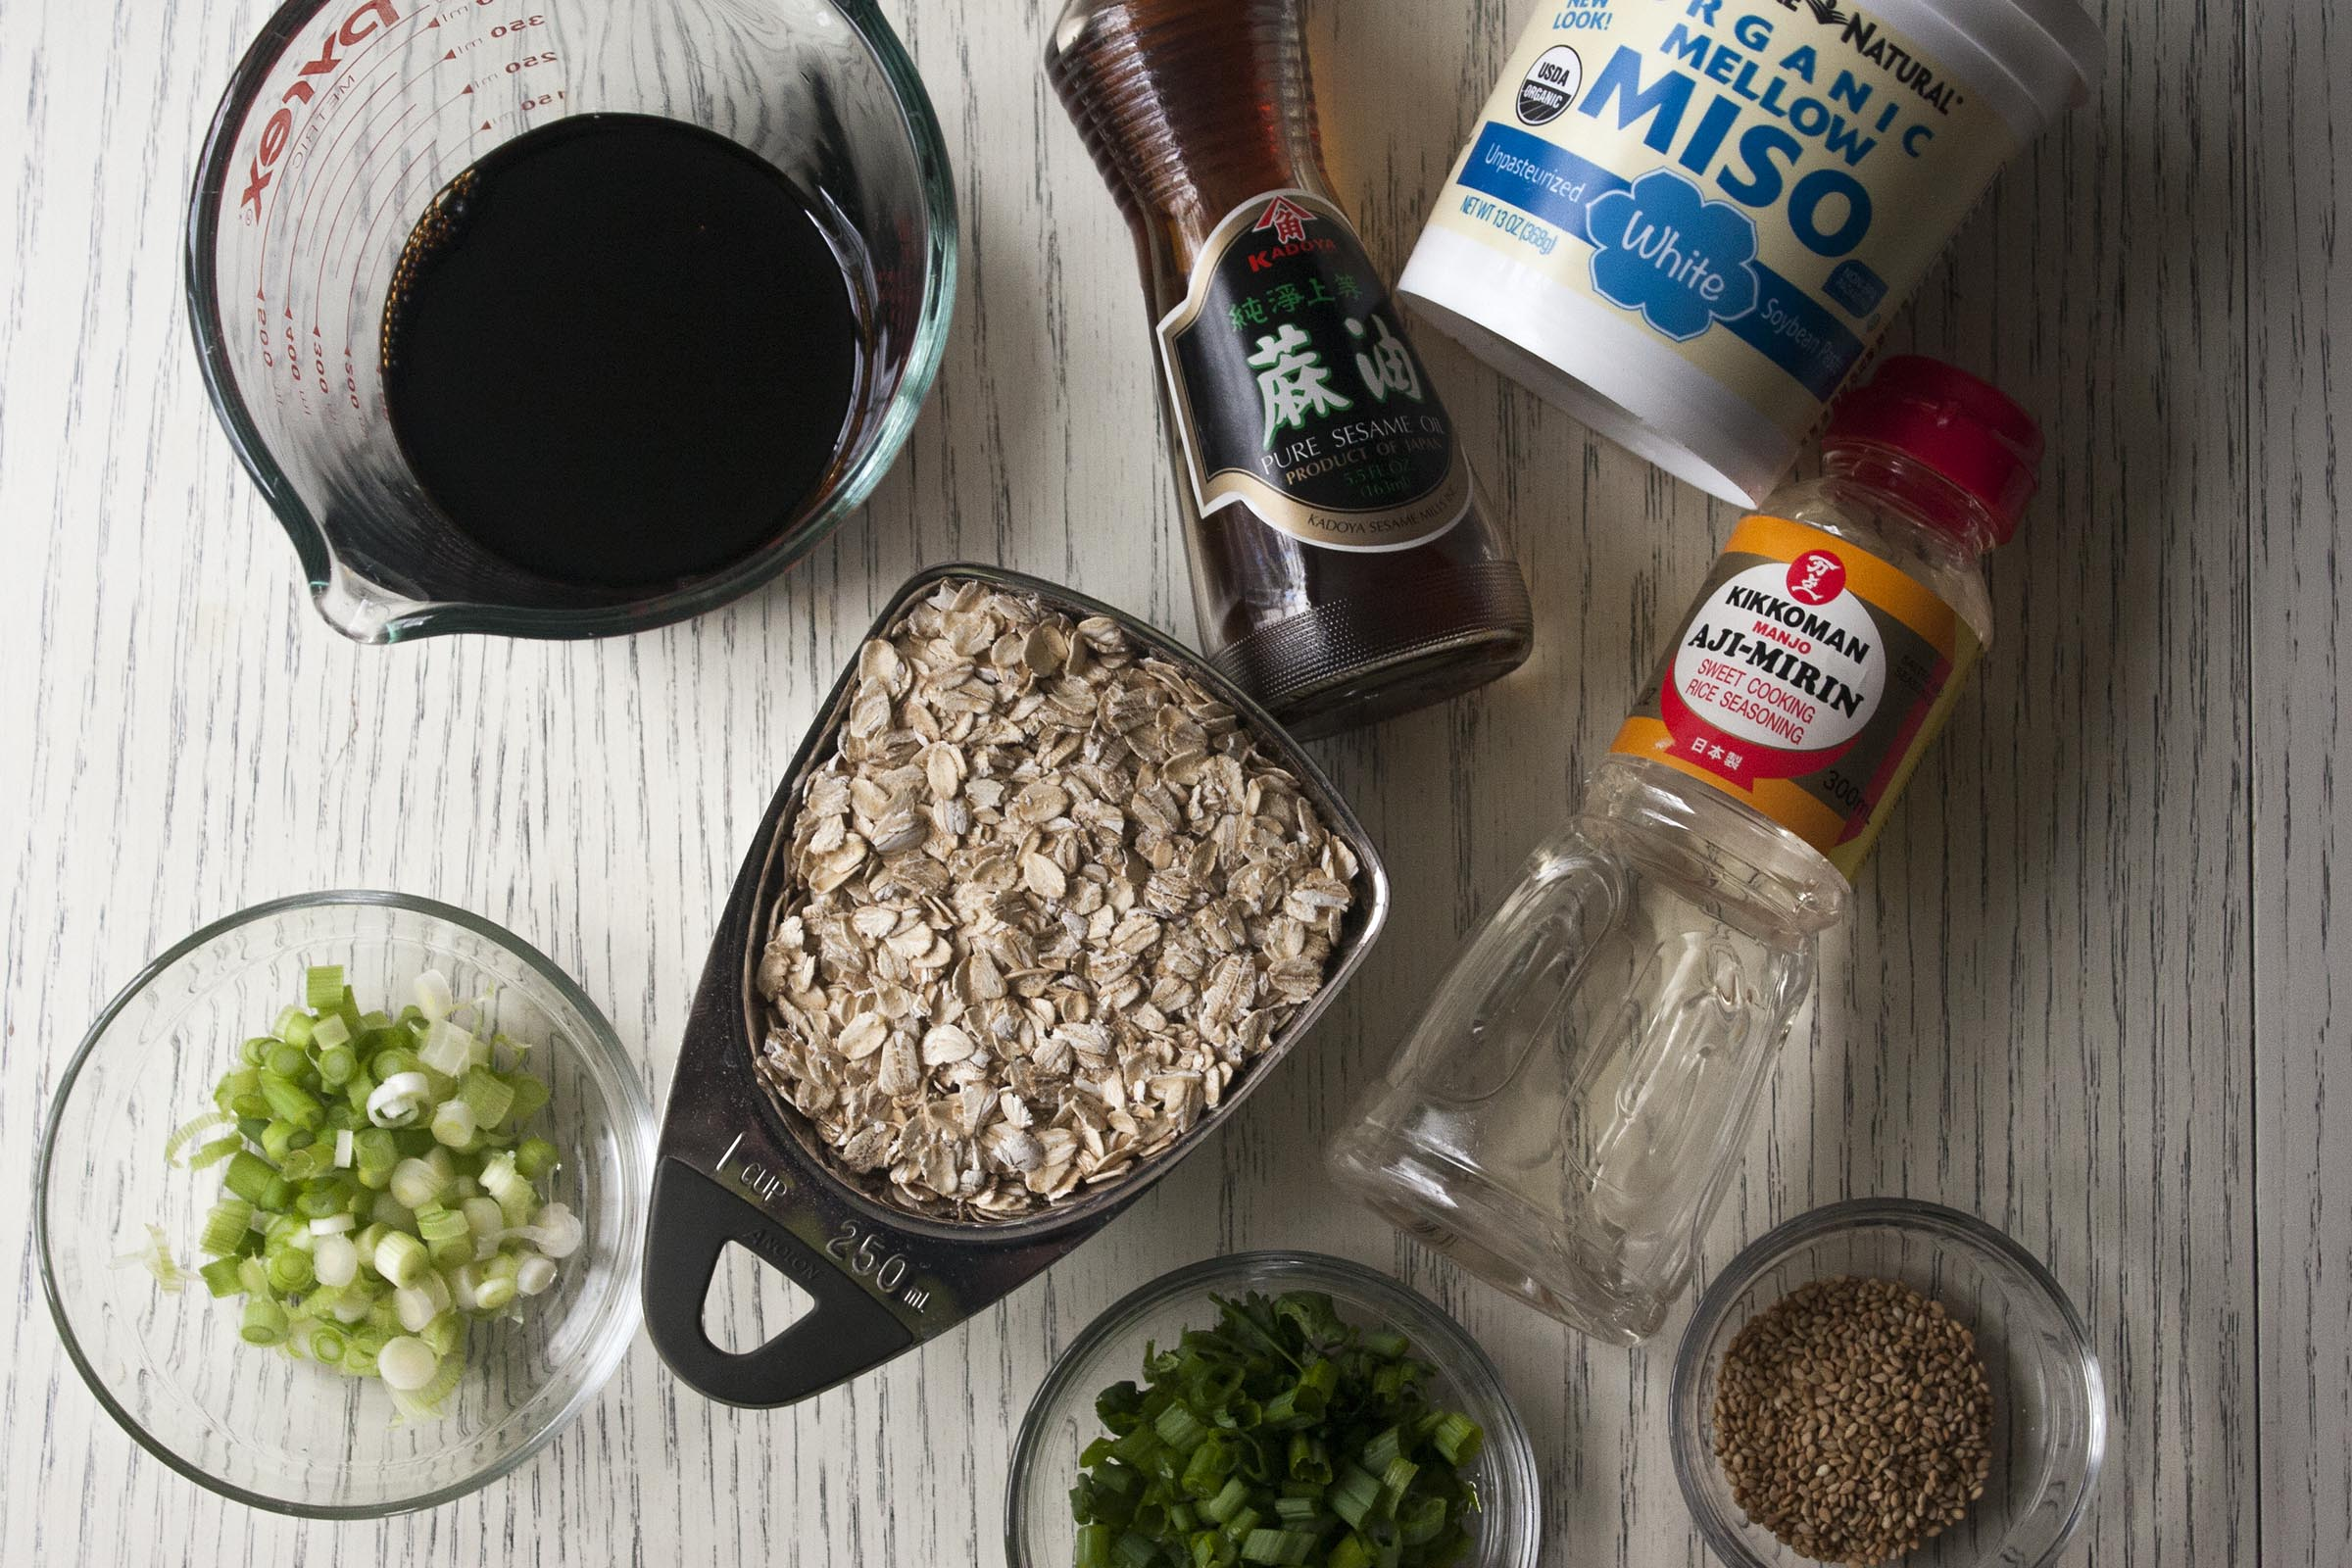 The pantry staples you need to make Savory Oats with Soy, Miso & Sesame. www.lifeaswecookit.com